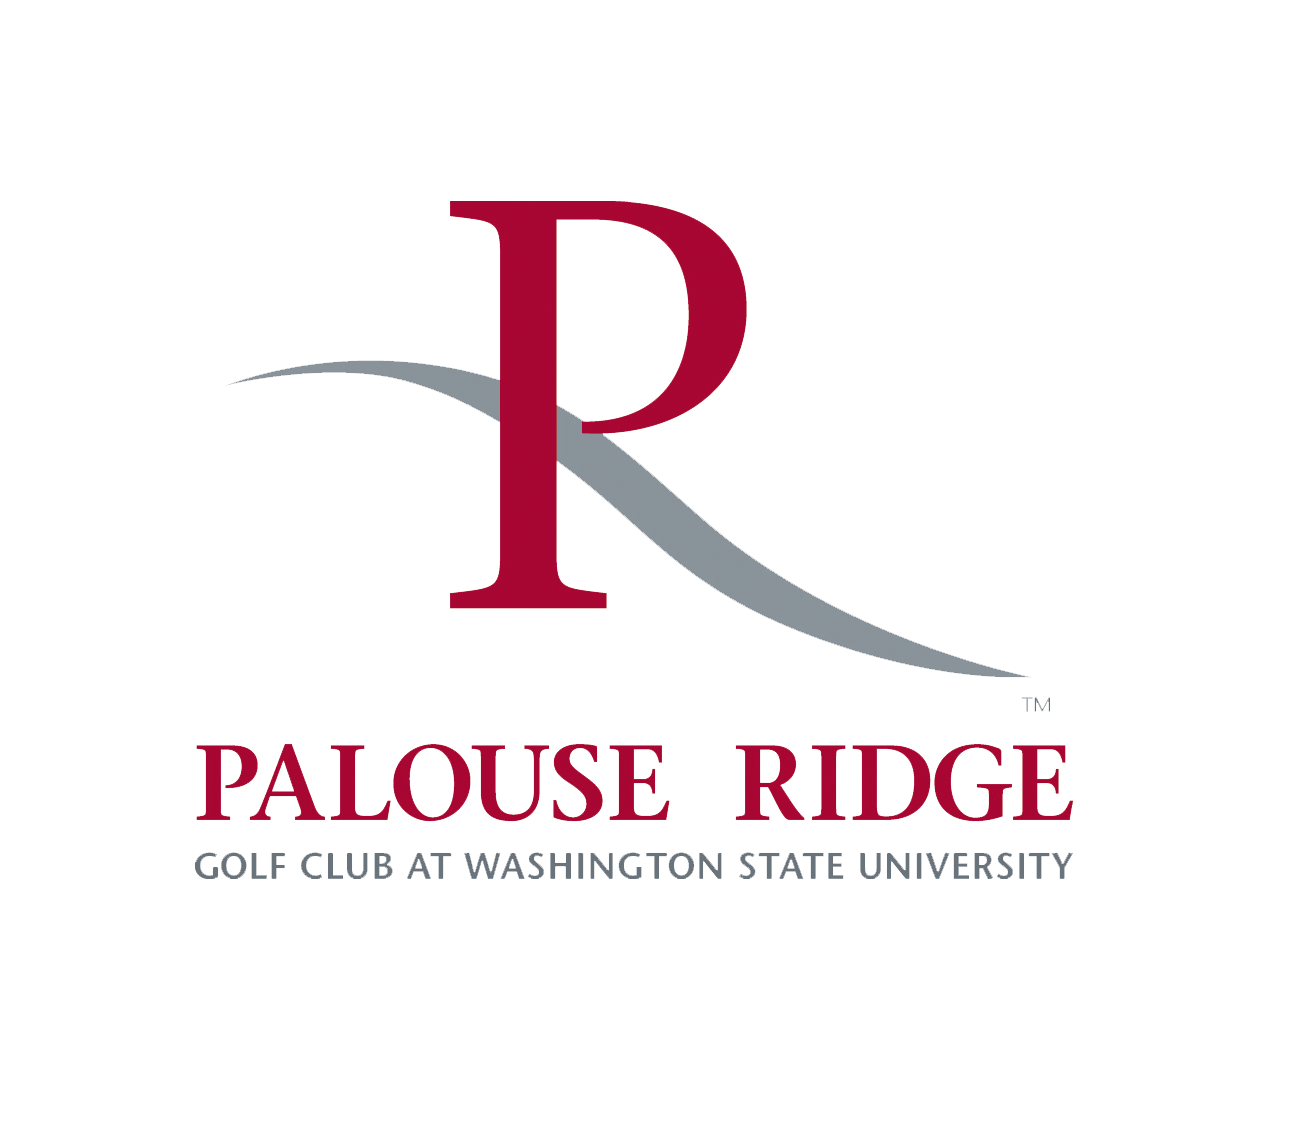 Palouse Ridge Golf Club